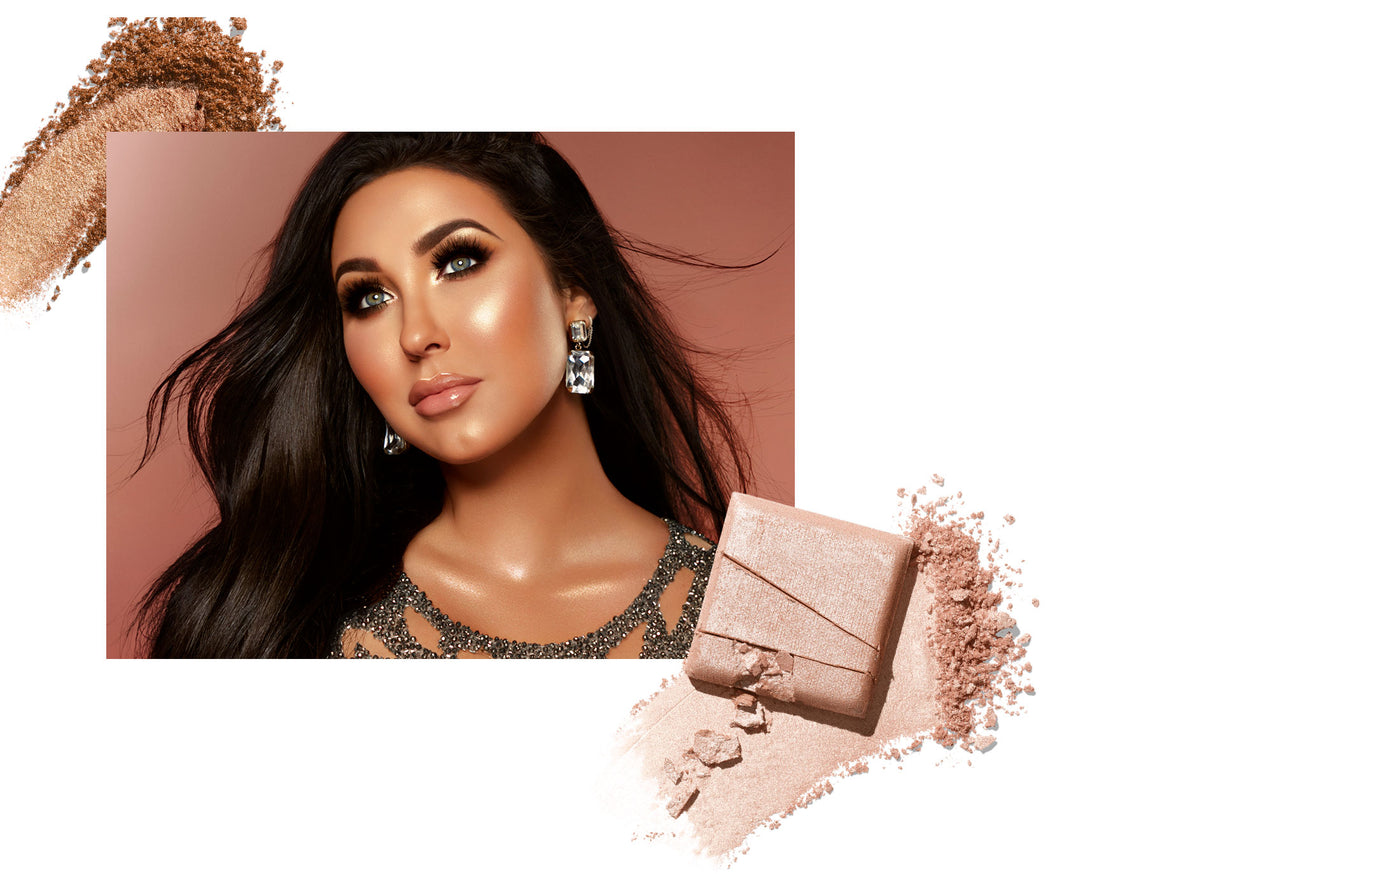 Jaclyn Hill with Jaclyn Cosmetics highlighter smears